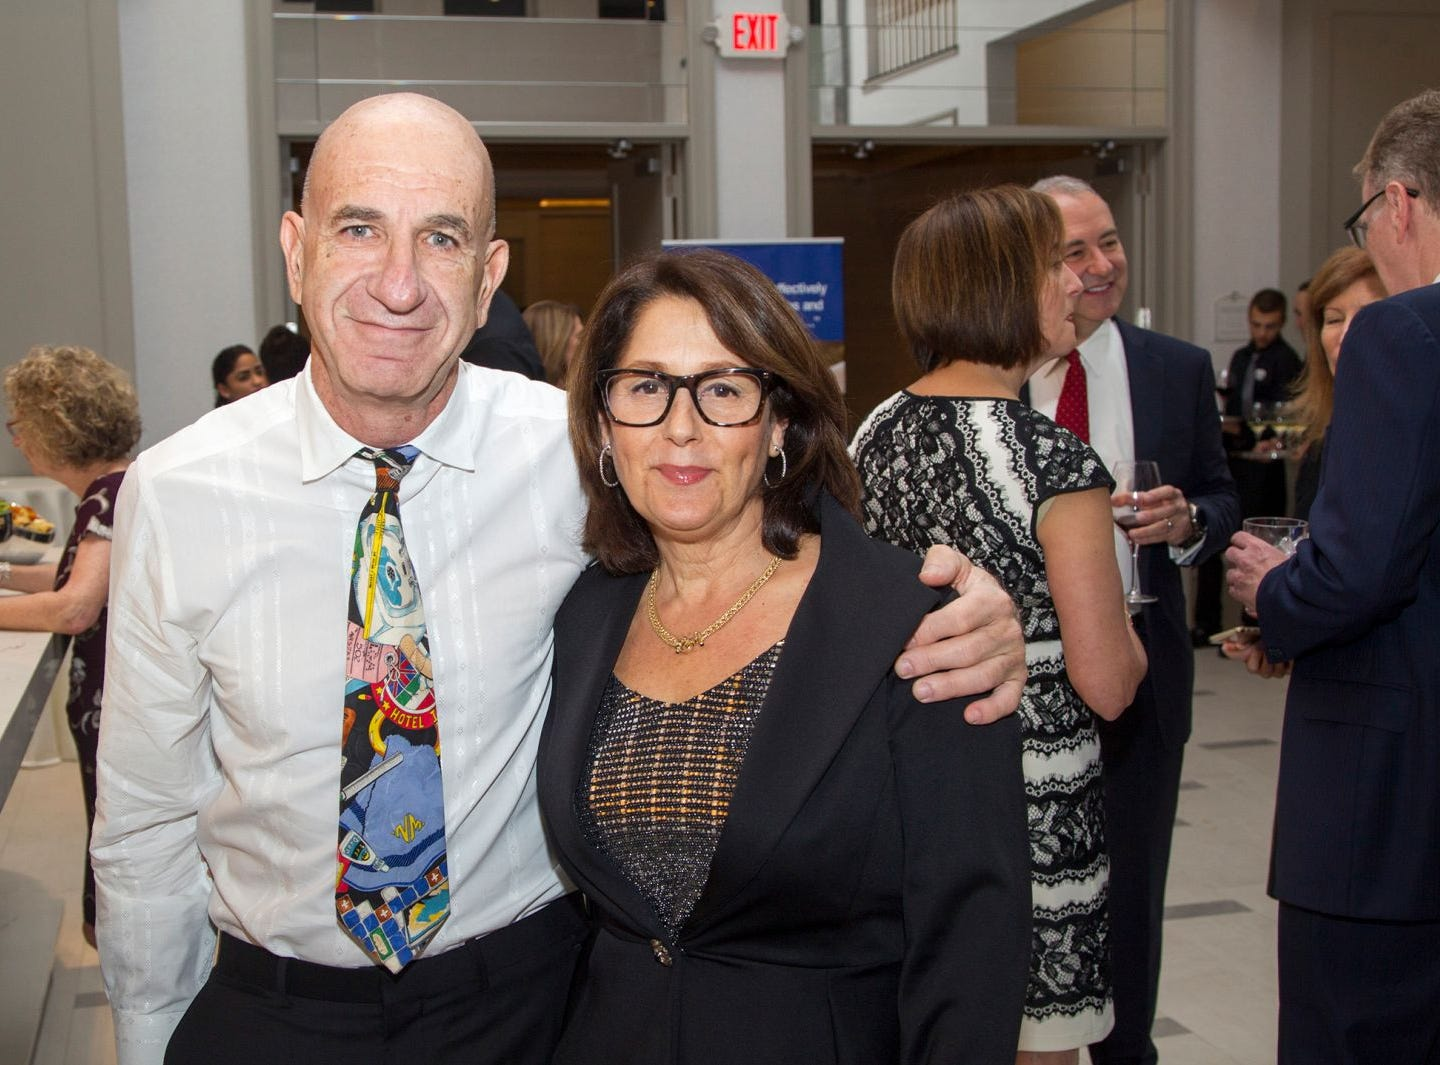 Nuriel and Debbie Guedalia. Jewish Family & Children's Services of Northern New Jersey held its annual gala at the Edgewood Country Club in River Vale. The evening honored Shira Feuerstein, Jayne Petak, and Alan Scharfstein for their leadership, support, and dedication. 11/18/2018